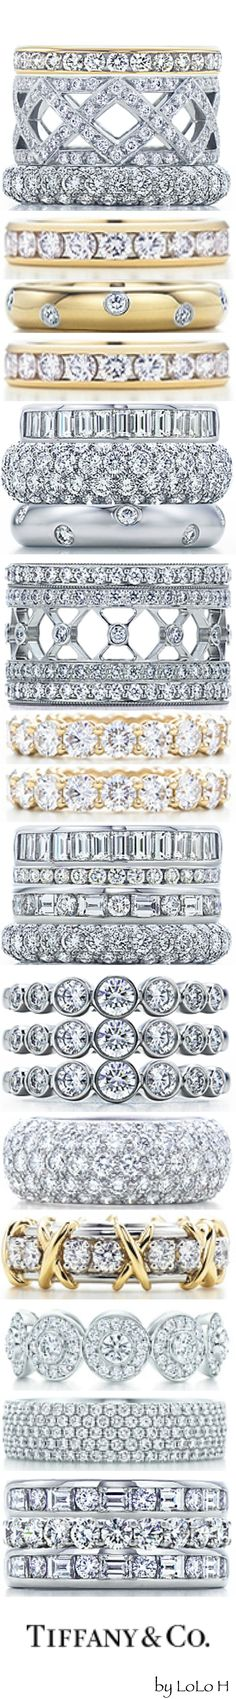 HELLO DIAMONDS!!! Tiffany Celebration Rings...you can create your own unique stack on Tiffany.com